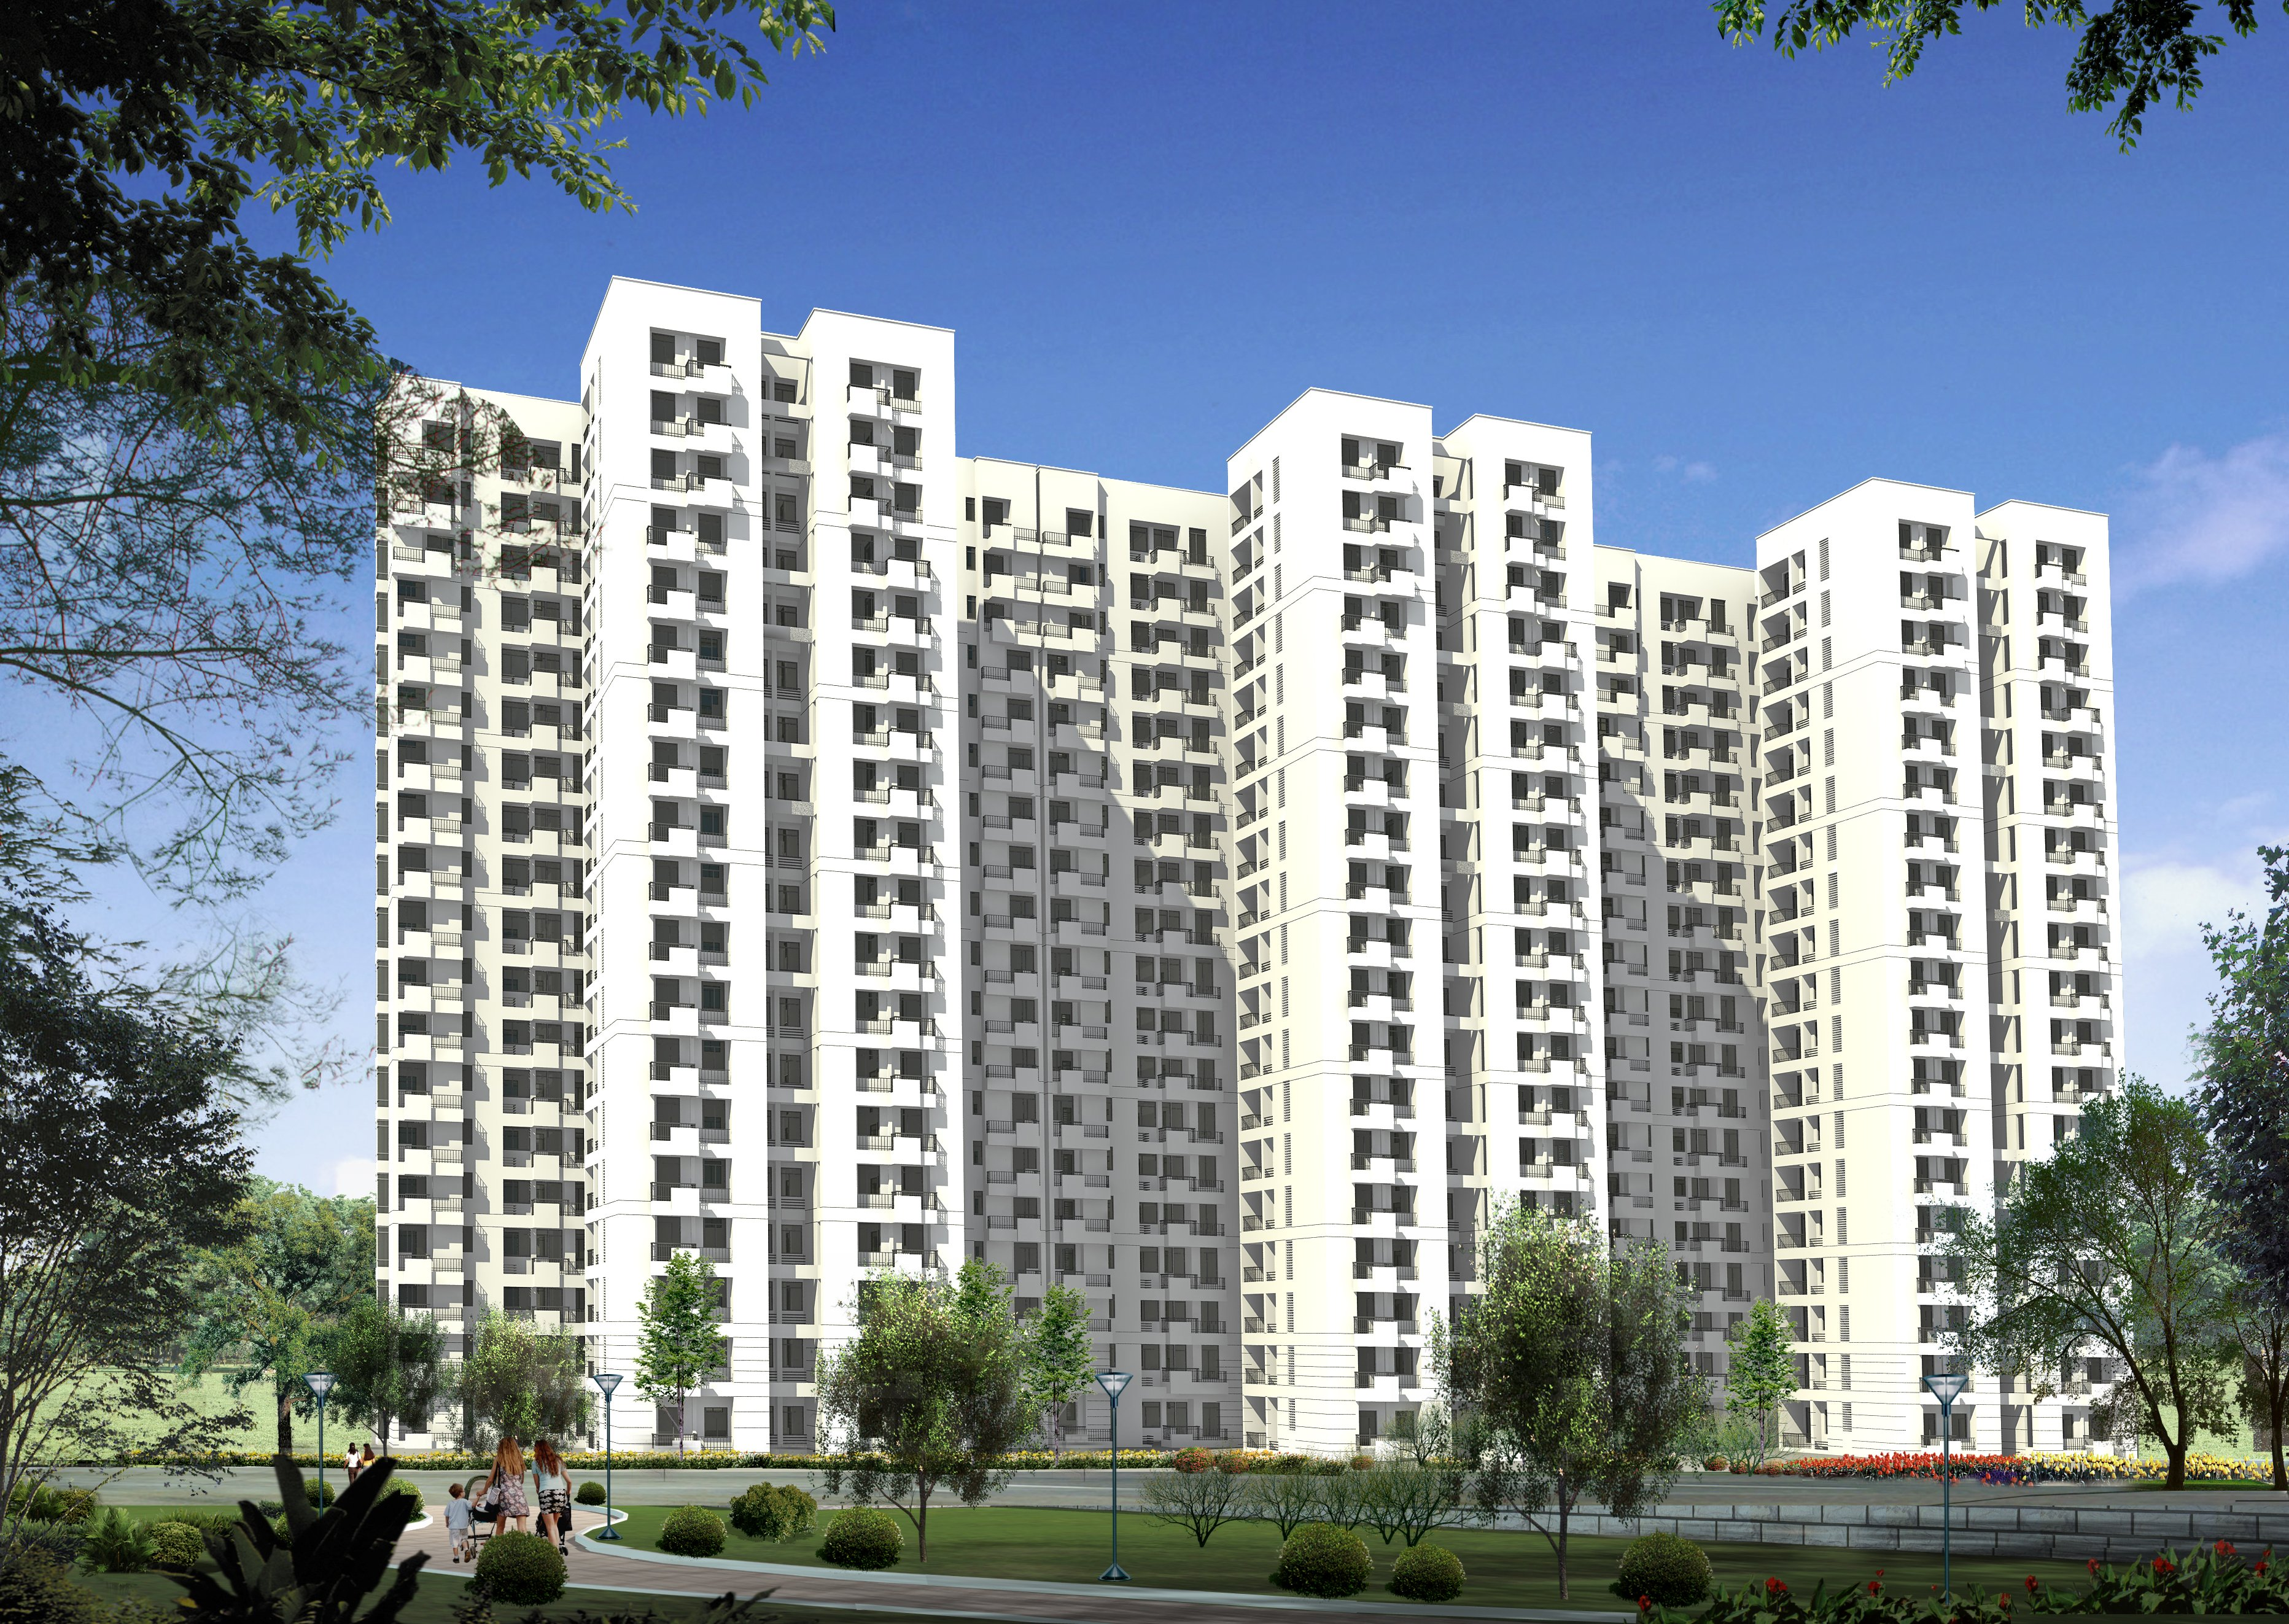 Jaypee kensington park Apartments heights